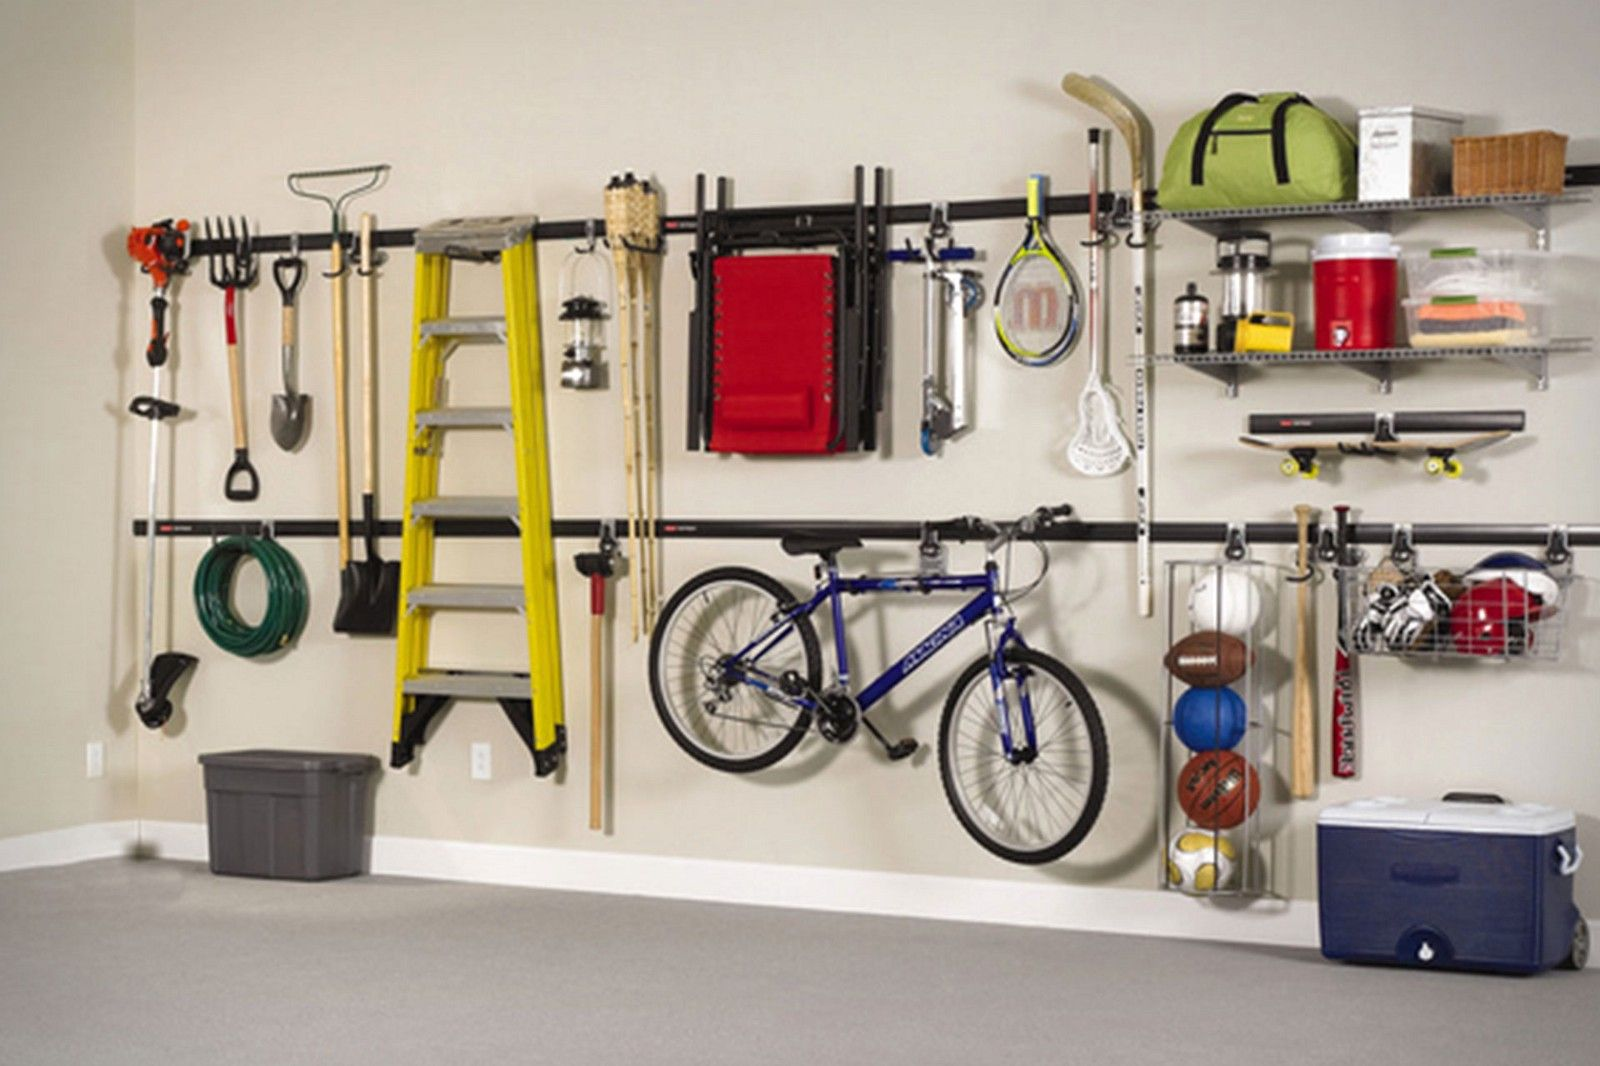 27 Garage Storage Ideas That Can Be Used As Storage Of Your Pet Astuce Rangement Stockage De Mur Rangement